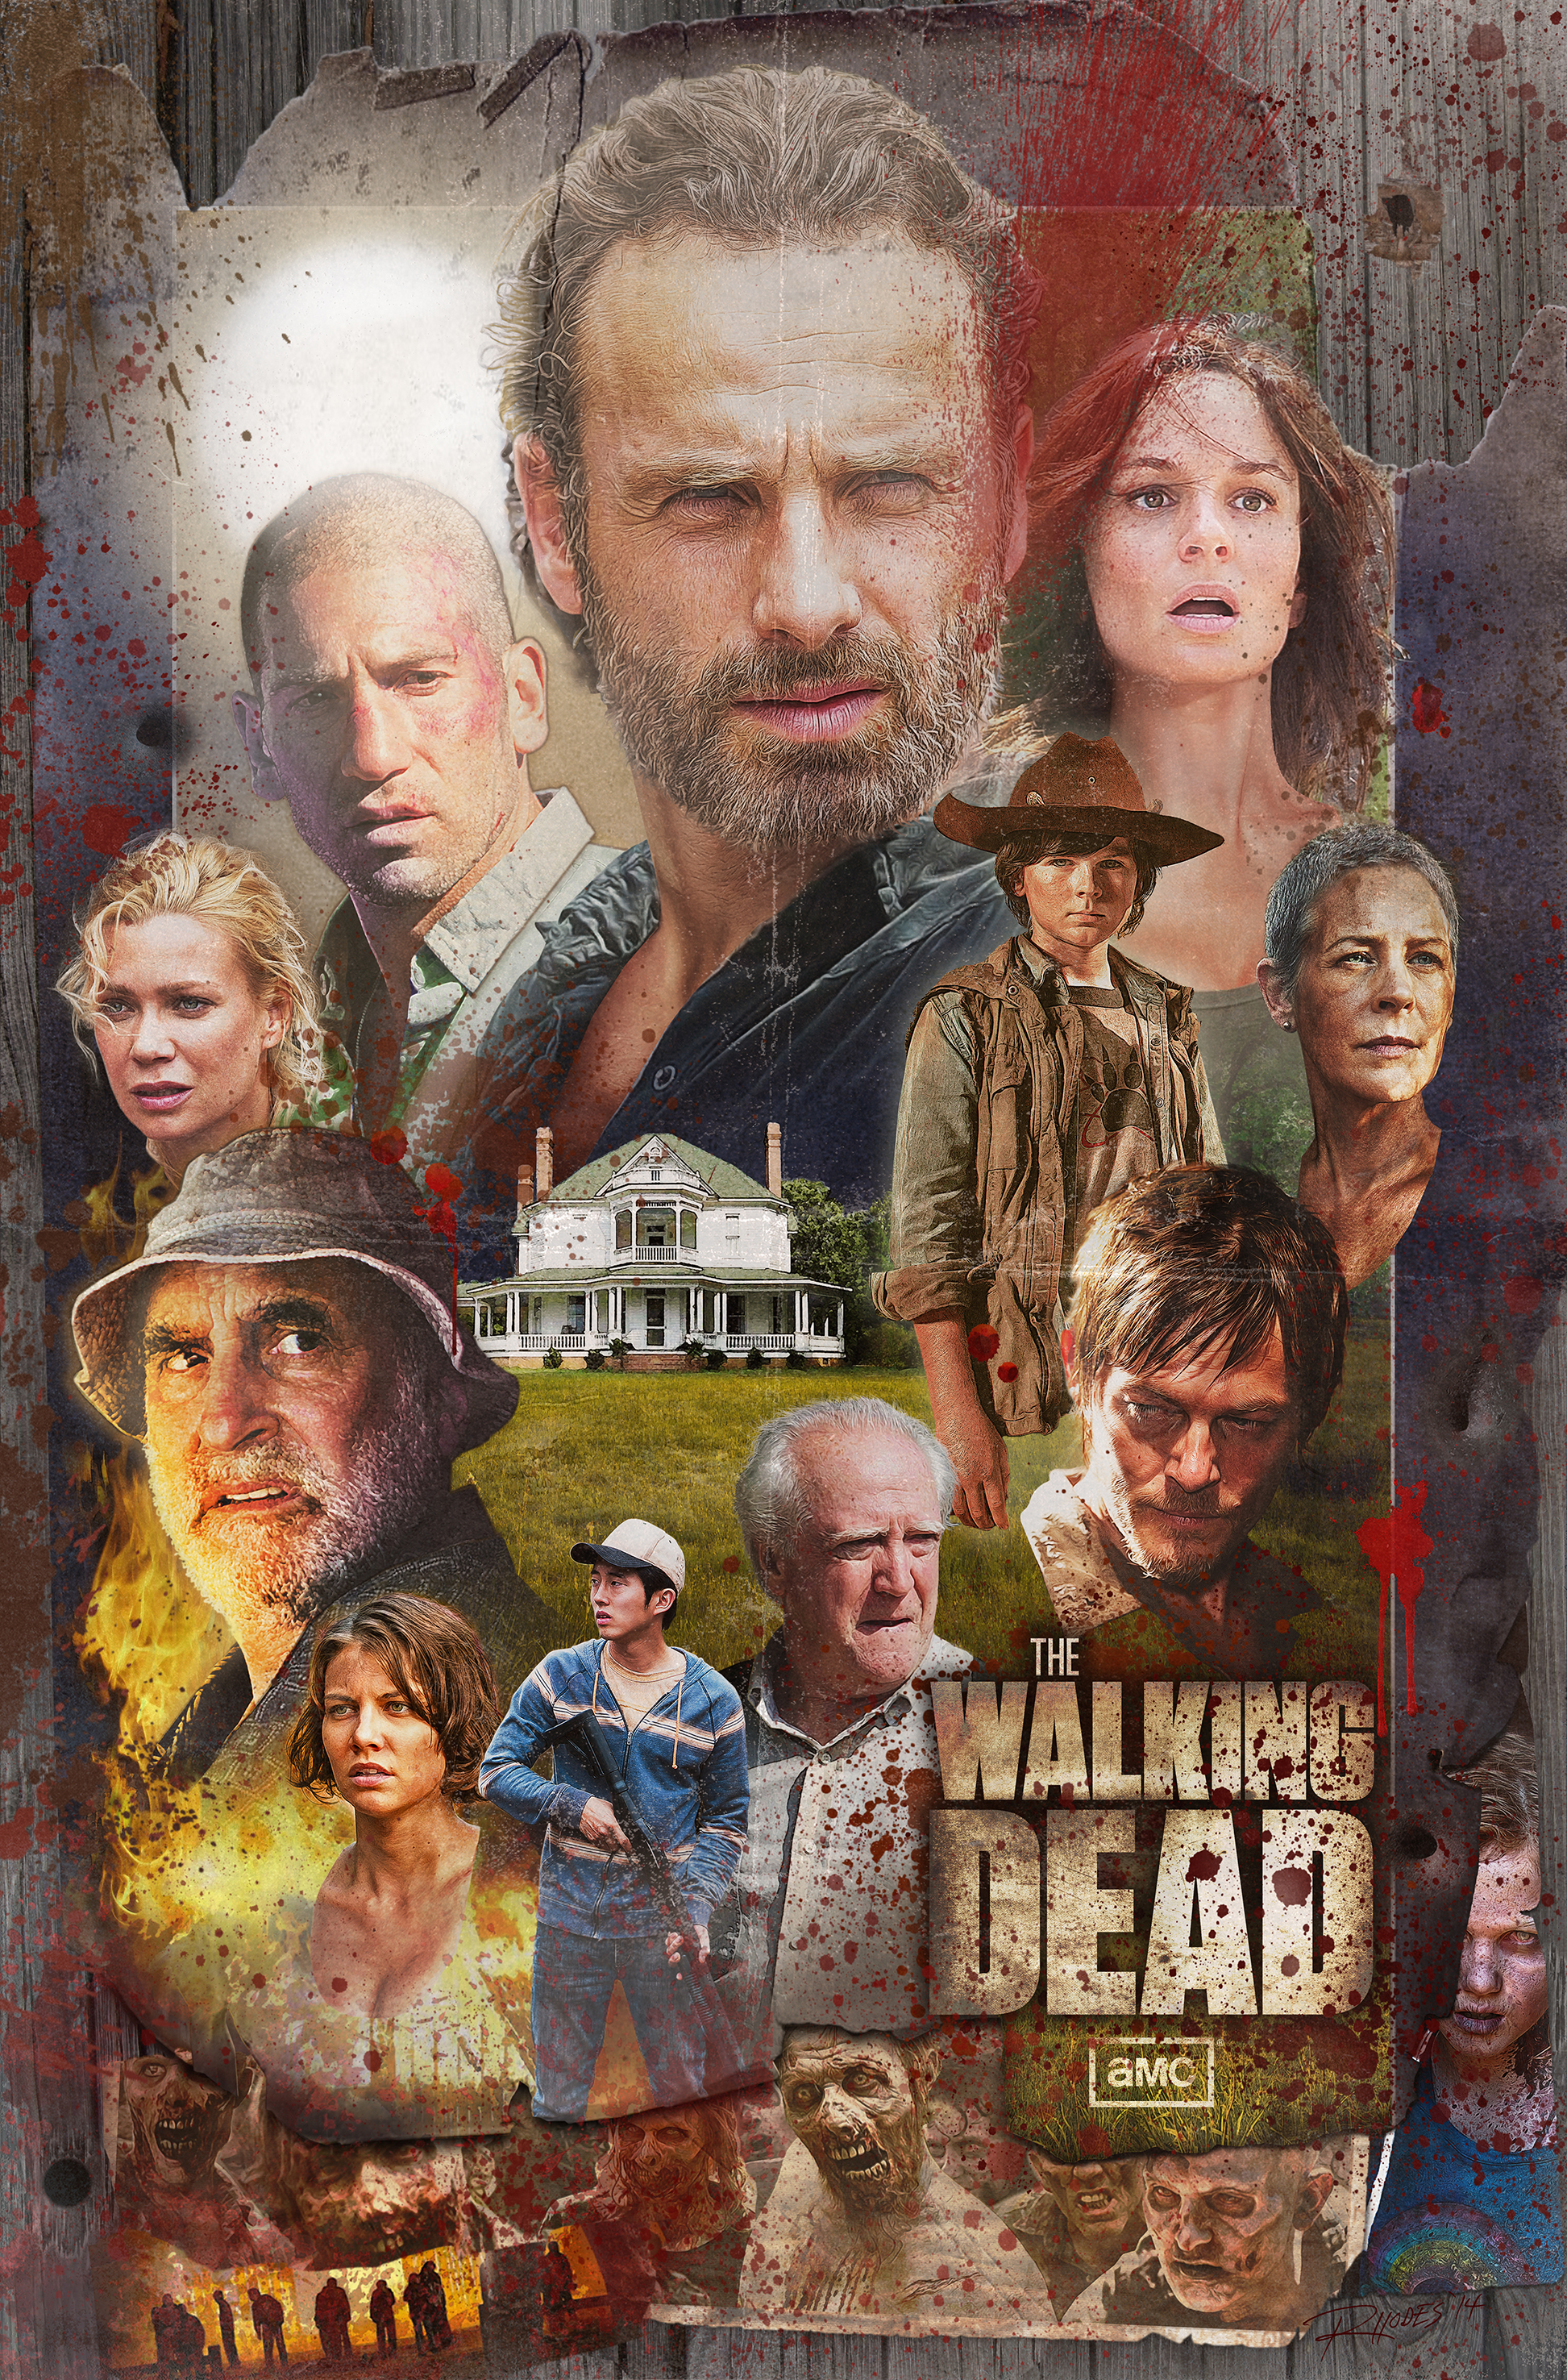 Walking Dead Season 2 Poster Cheef411 Fan Art 38018867